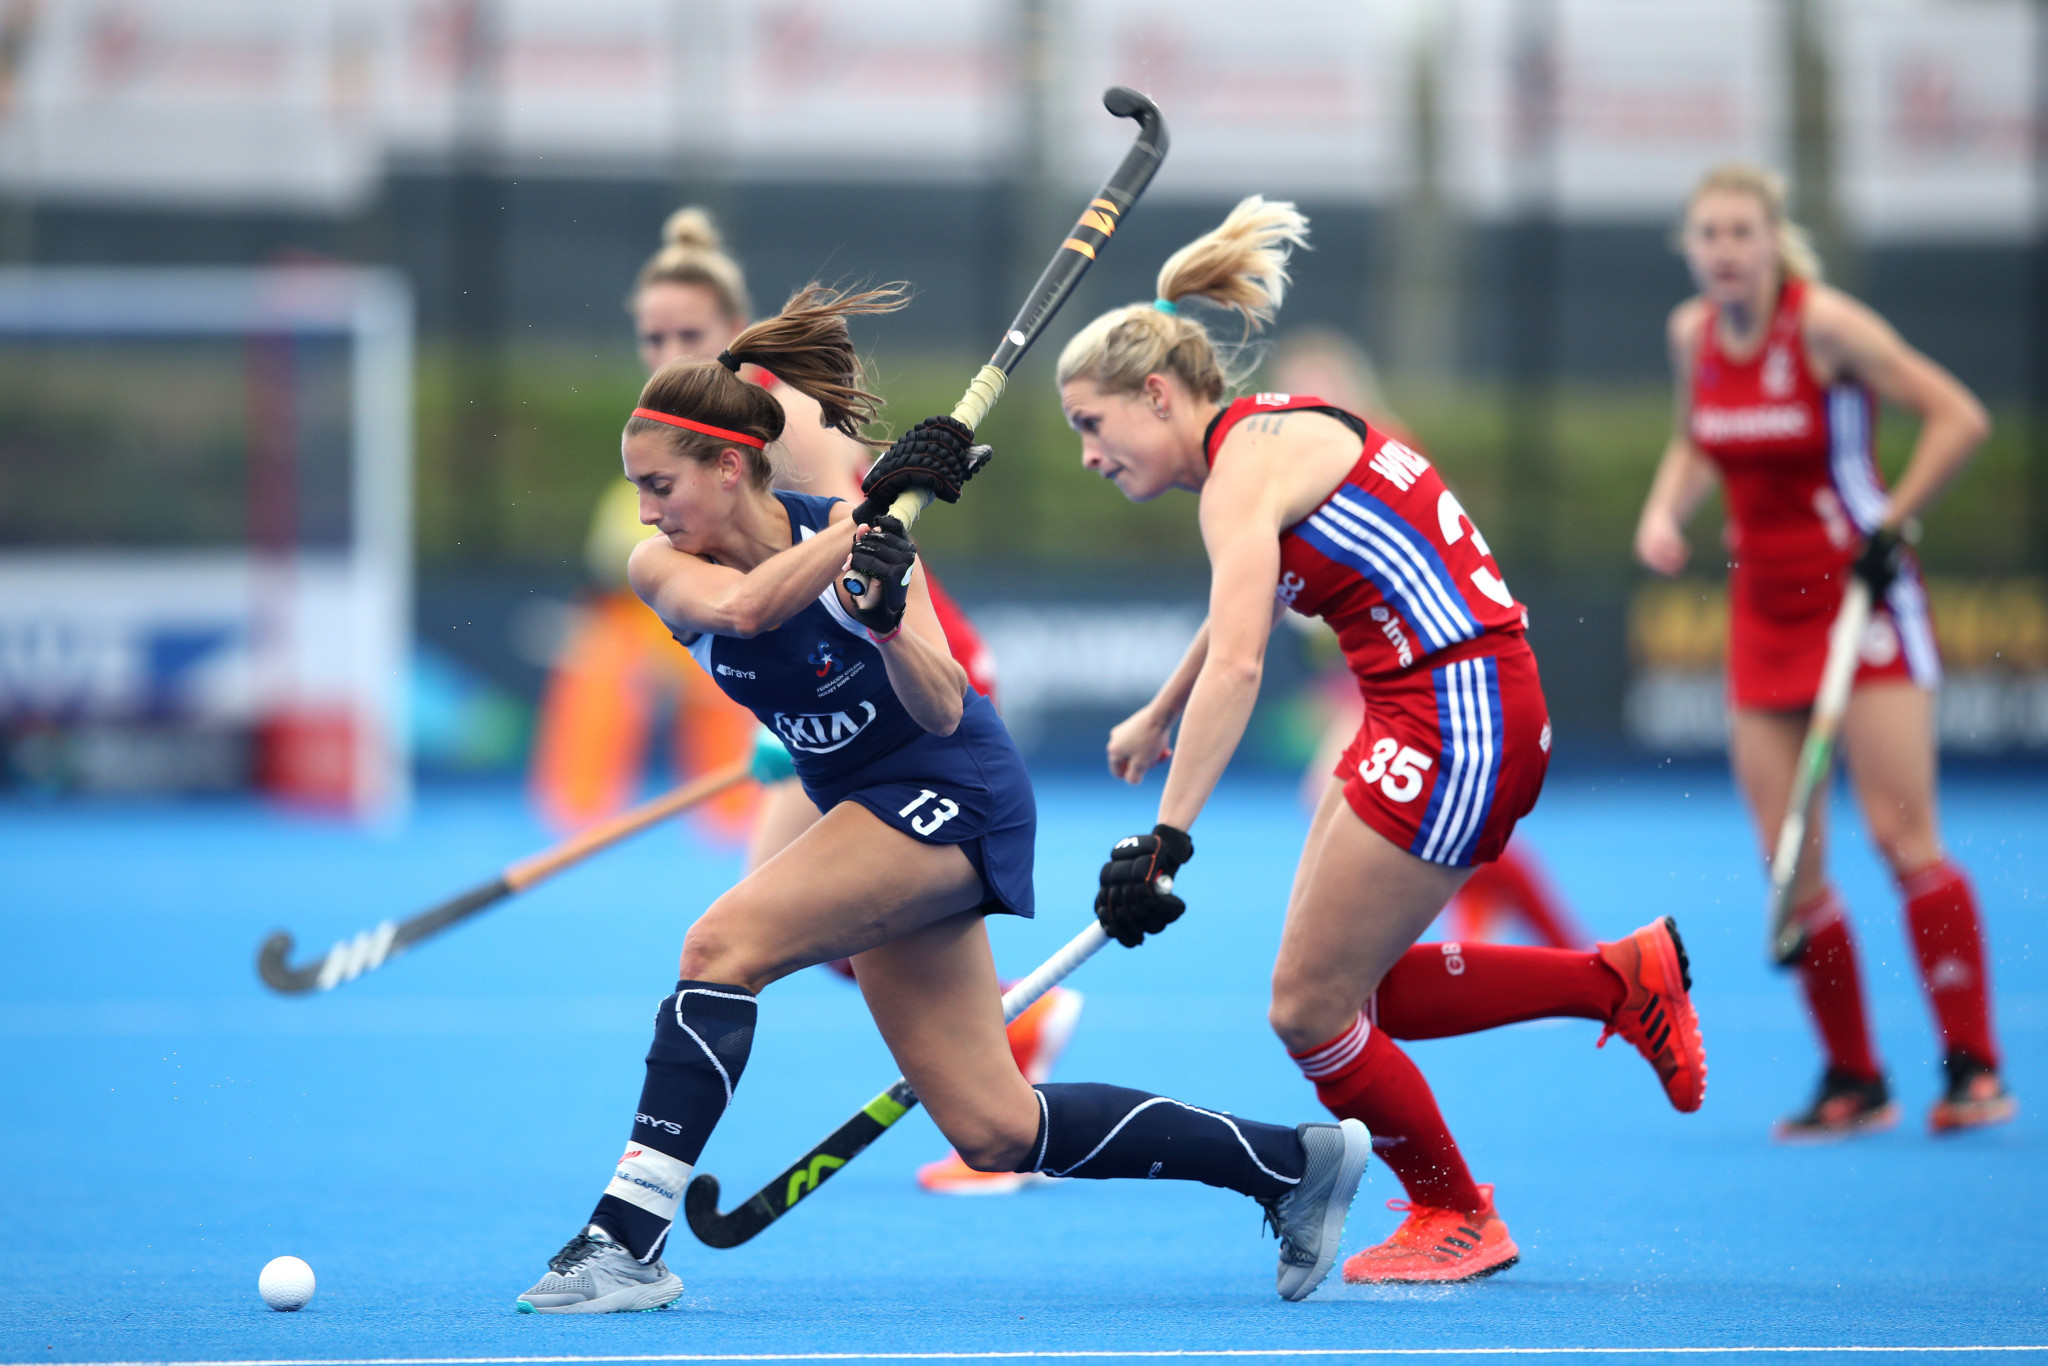 Olympic champions Britain qualify for women's hockey event at Tokyo 2020